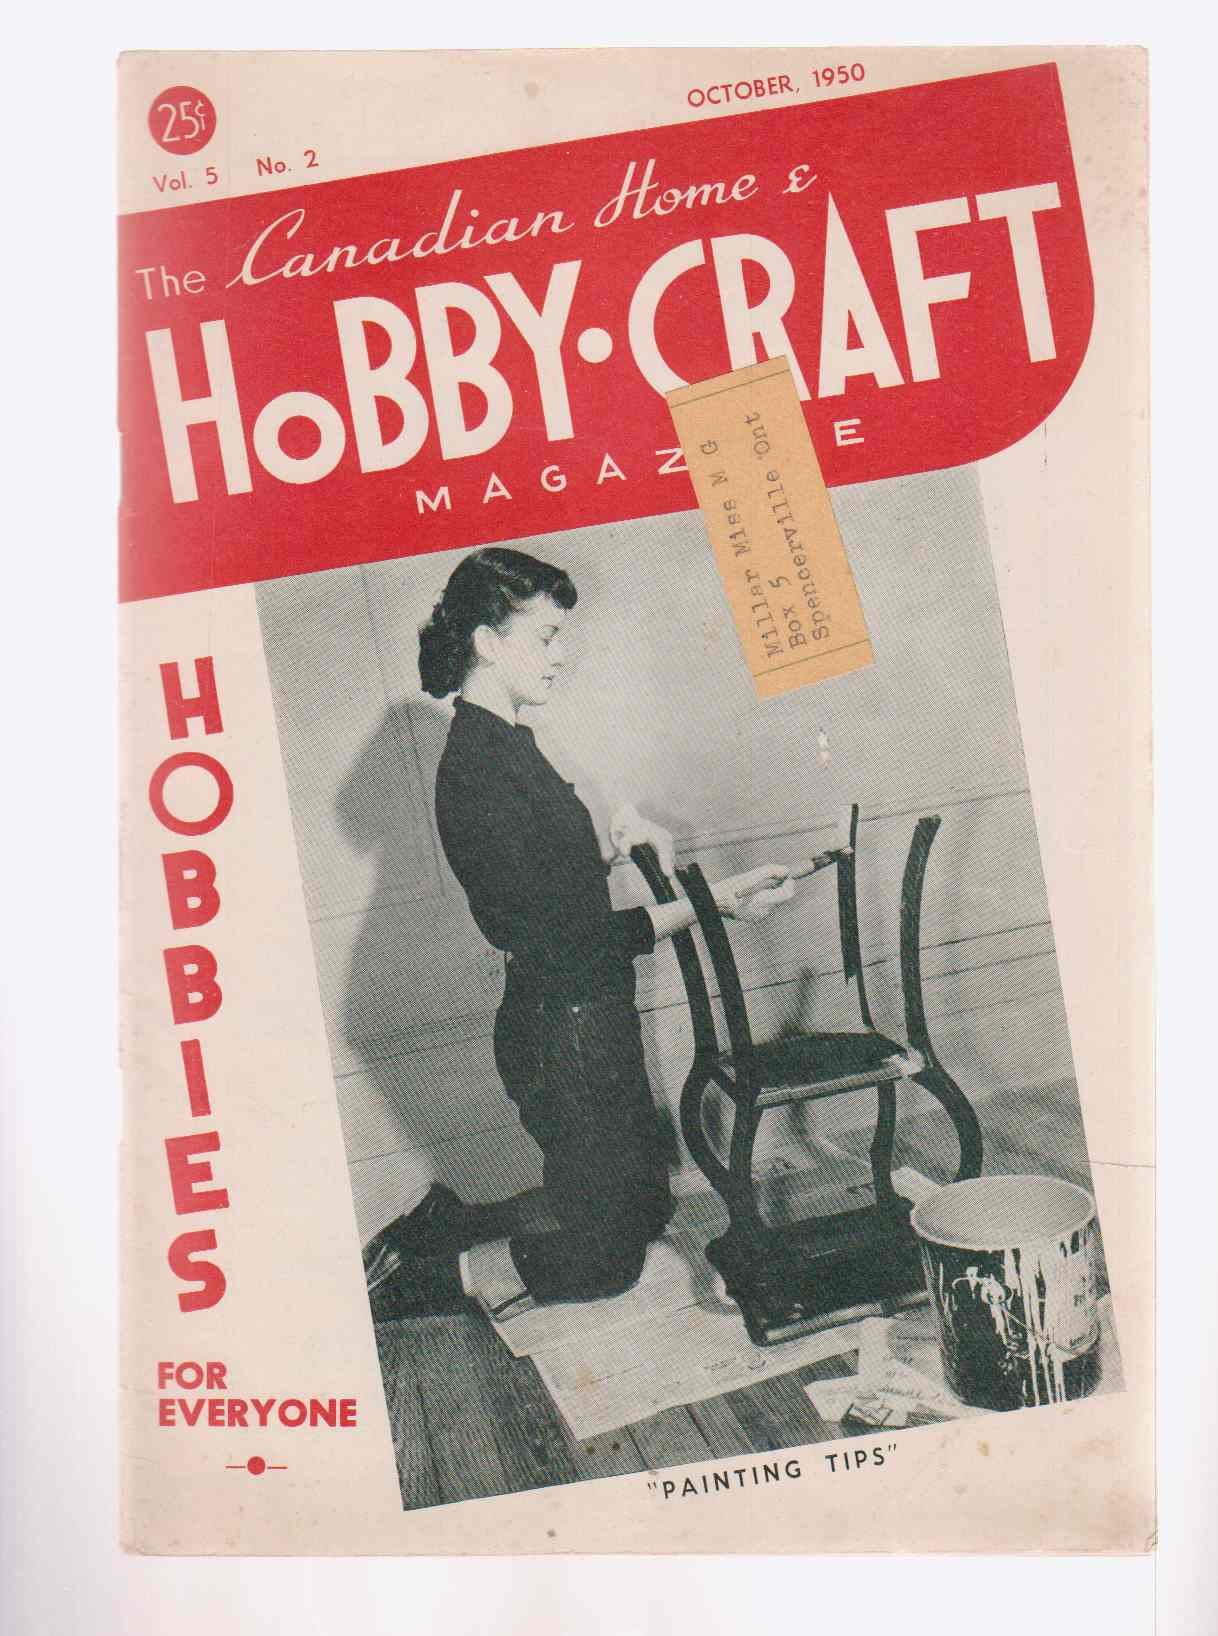 Image for The Canadian Home and Hobby-Craft Magazine September - October 1950 Vol. 5 No. 2